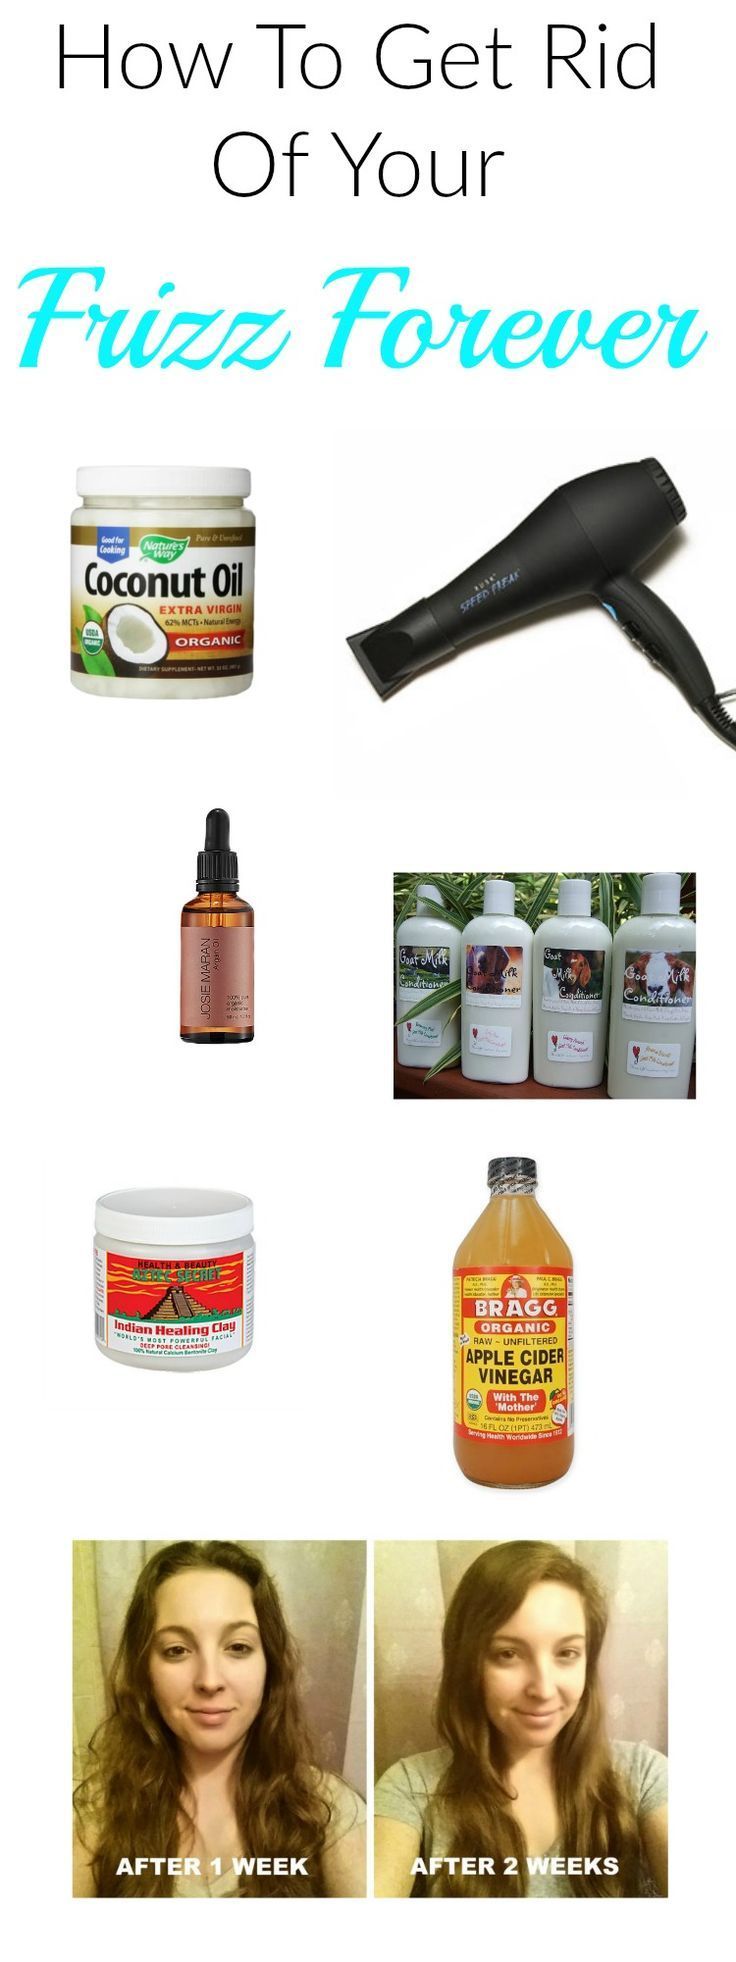 How To Get Rid Of Your Frizz Forever. Great find! I have battled with frizzy hair for years and wasted hundreds of dollars trying to find something that will permanently get rid of it. Salon products only fix it temporarily and I still have to put so much time into doing my hair. I would love to just be lazy and still look cute. I'm so excited to try this conditioner after reading all of the raving reviews about it!